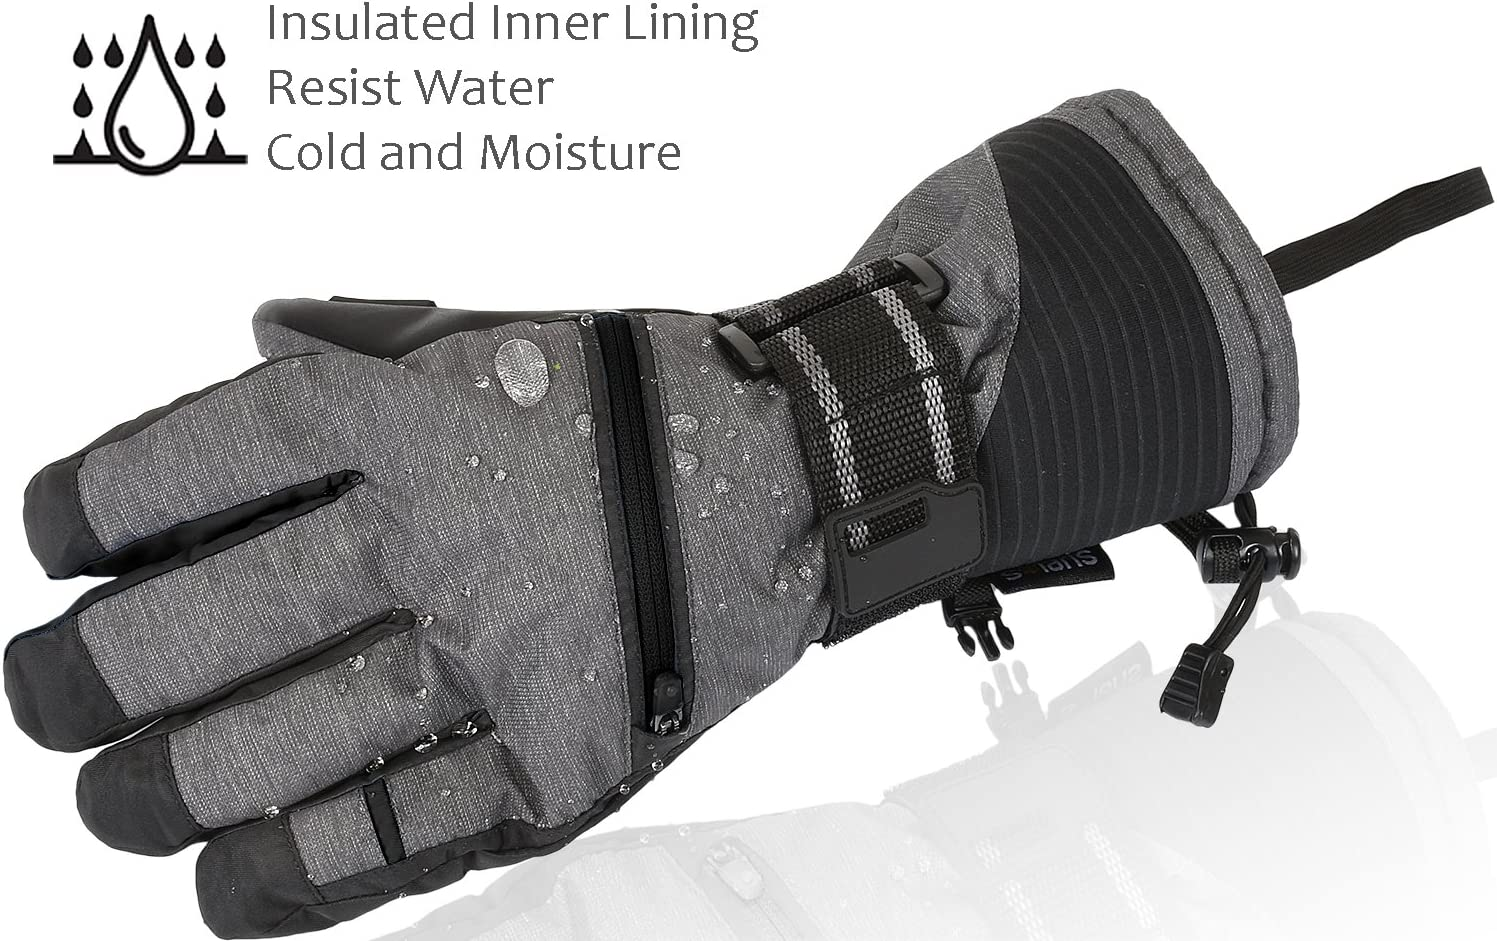 Winter Warm Cozy 3M Thinsulate Snow Gloves for Skiing Cycling Shoveling Gifts for Men,Women Waterproof Ski Gloves Outdoor Sports Snowboarding